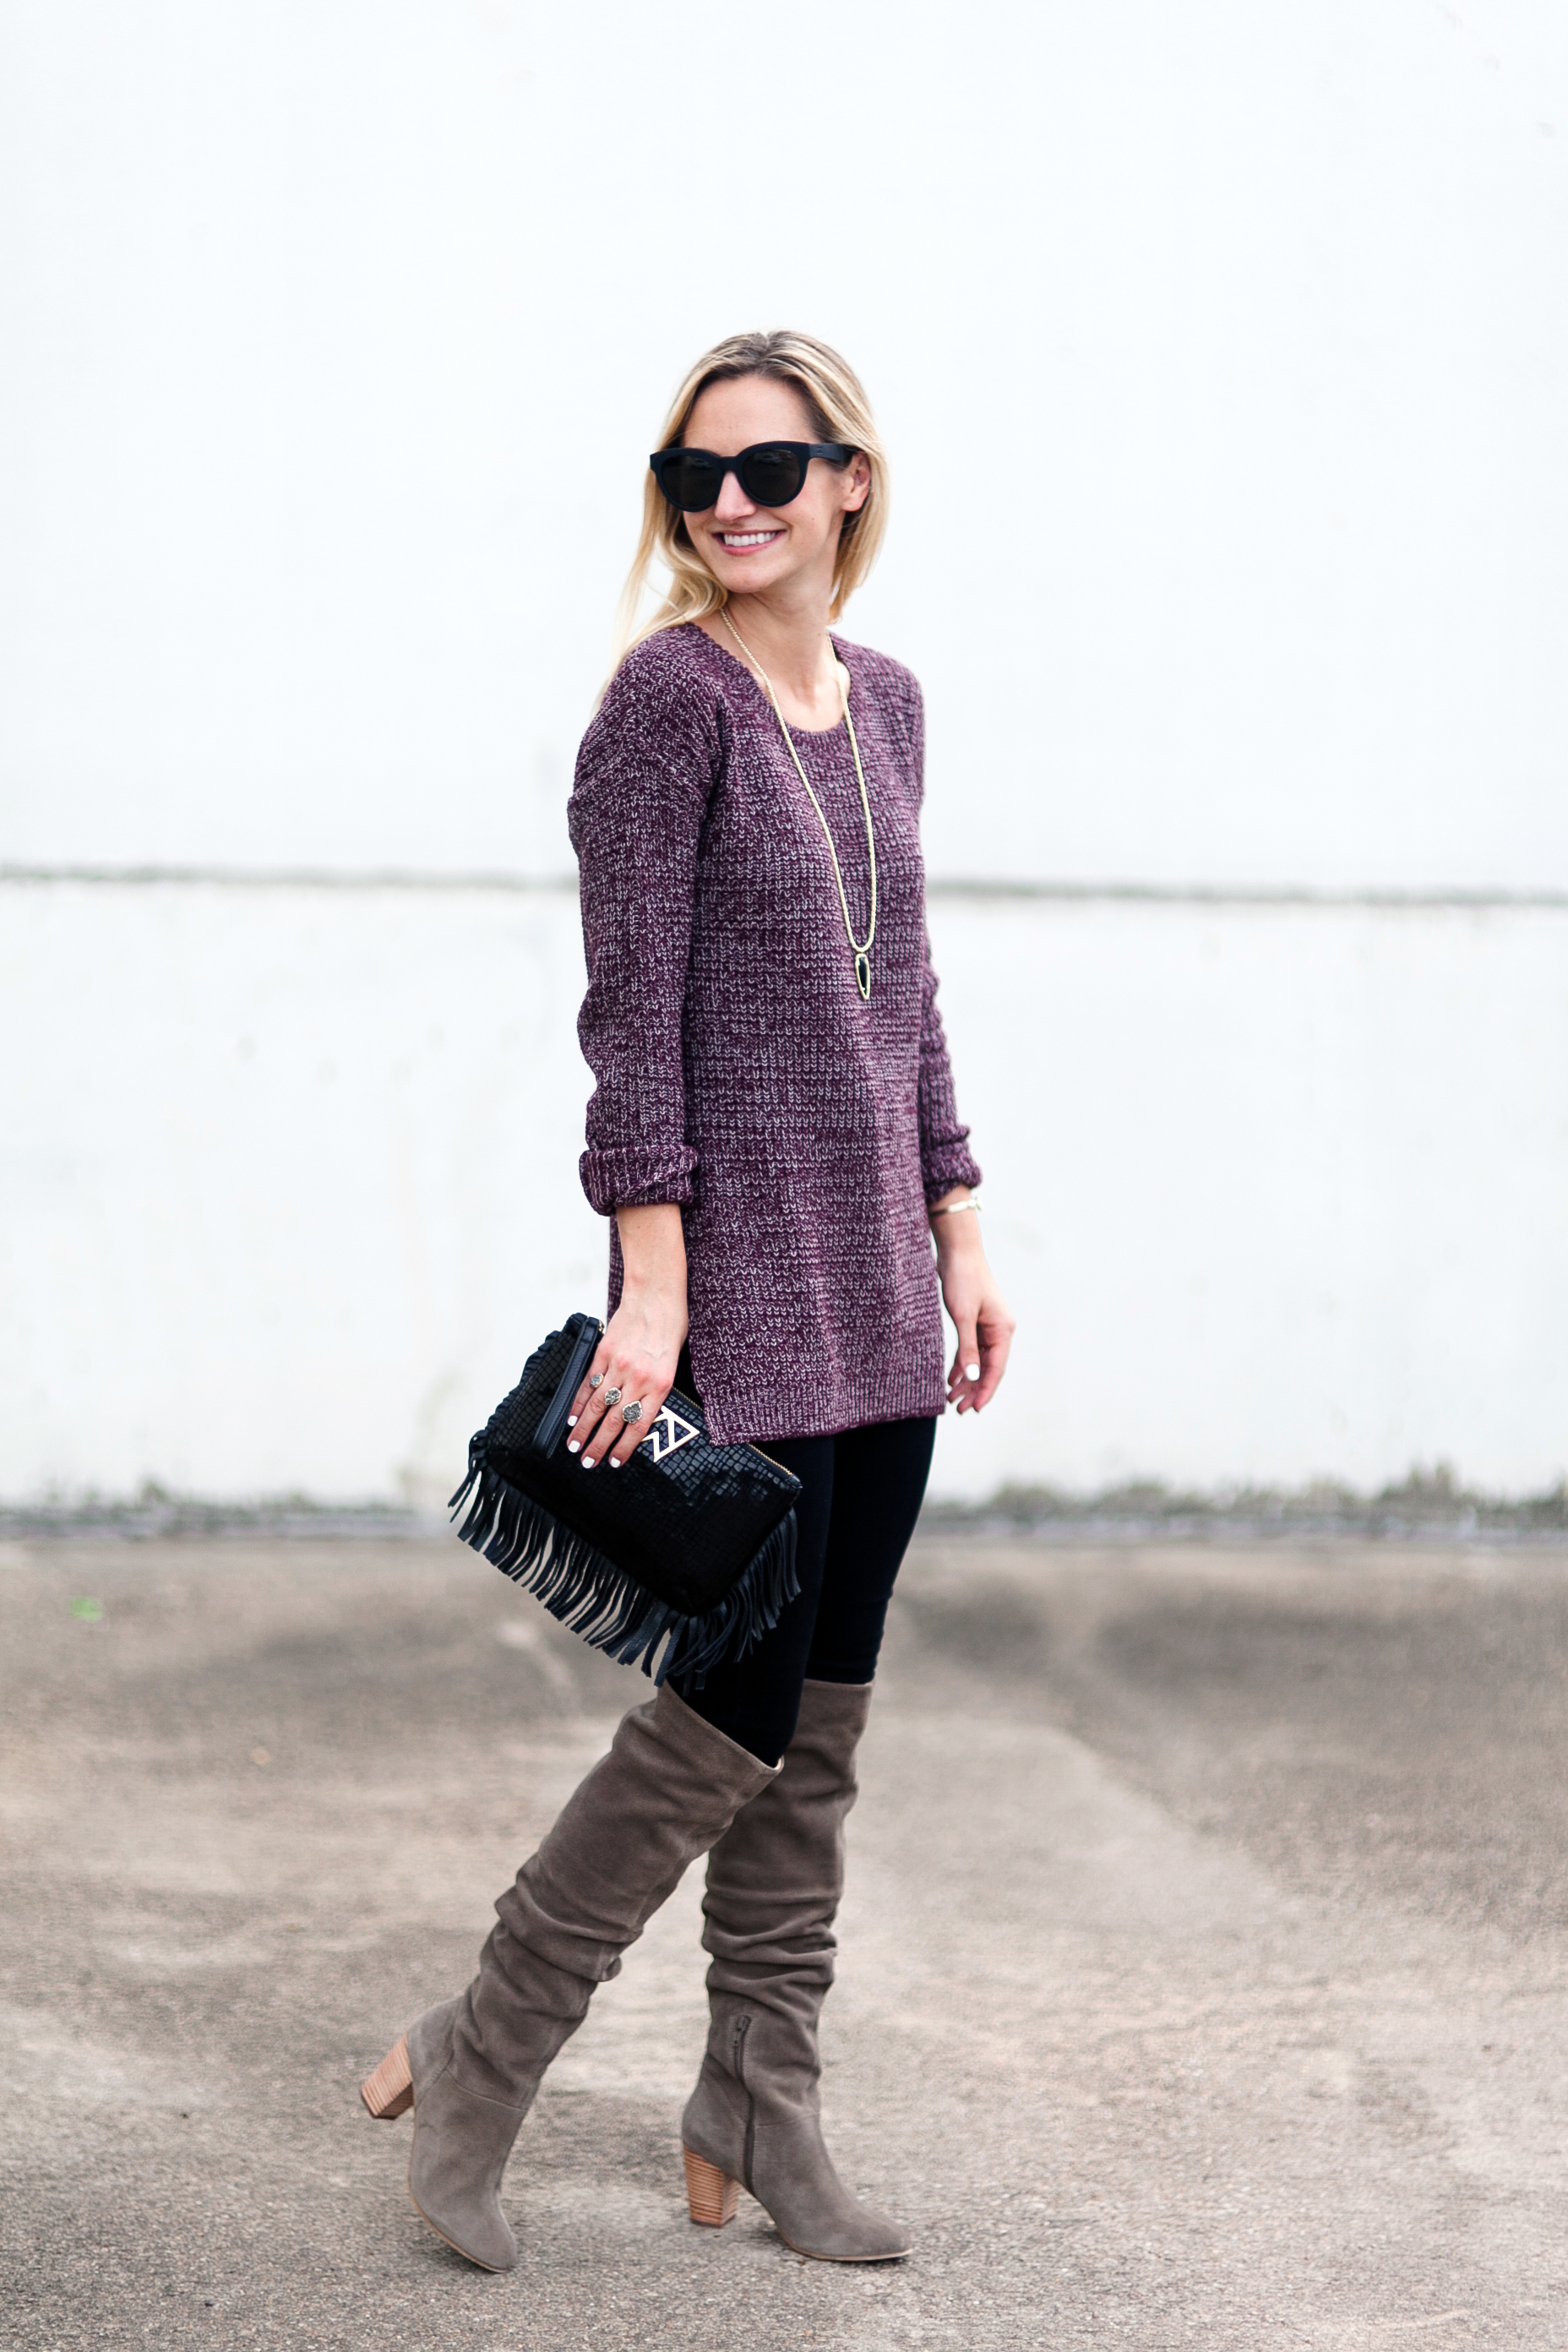 livvyland-blog-olivia-watson-seychelles-over-the-knee-boots-taupe-kelly-wynne-frisky-business-wristlet-fringe-clutch-kayla-snell-photography-olivia-watson-2